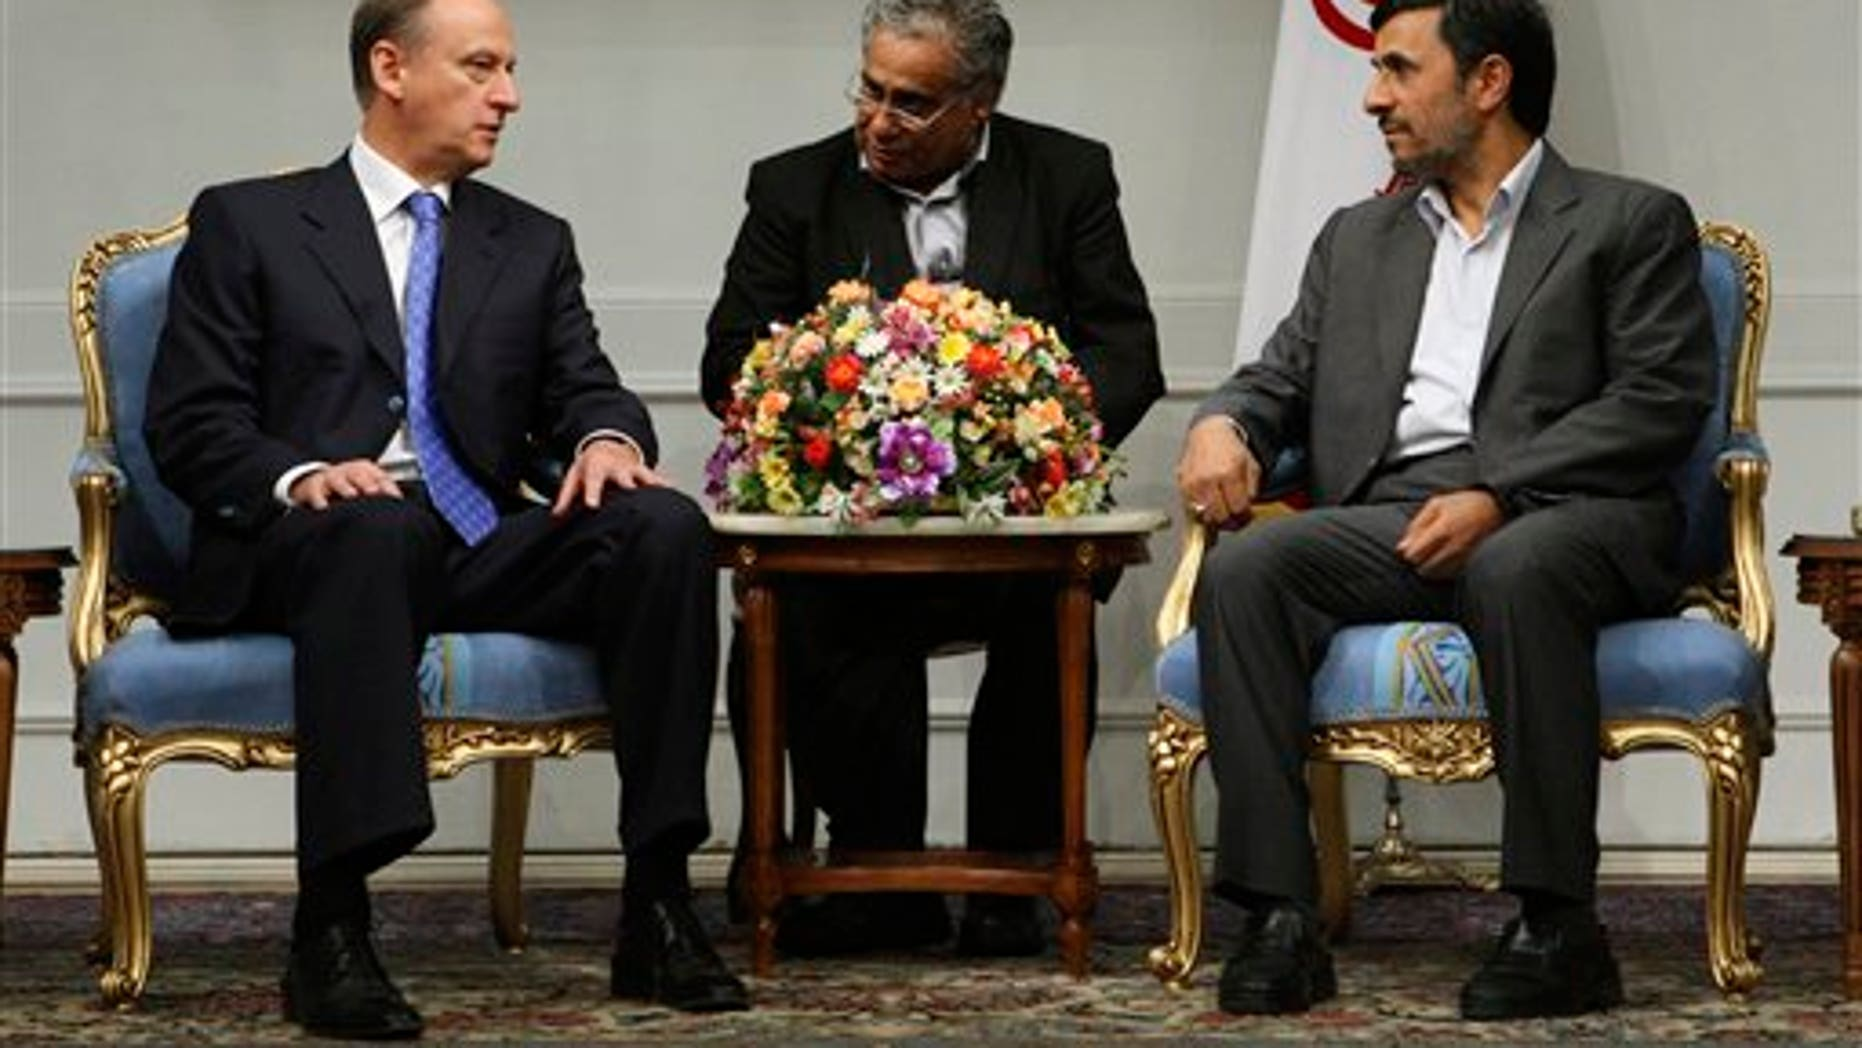 Aug. 16: Iranian President Mahmoud Ahmadinejad, right, meets with Russia's Security Council Secretary Nikolai Patrushev at the presidency office in Tehran, Iran. Iran's state news agency said Patrushev arrived Monday in Tehran to discuss a proposal to bring Iran back to negotiations over its disputed nuclear program.